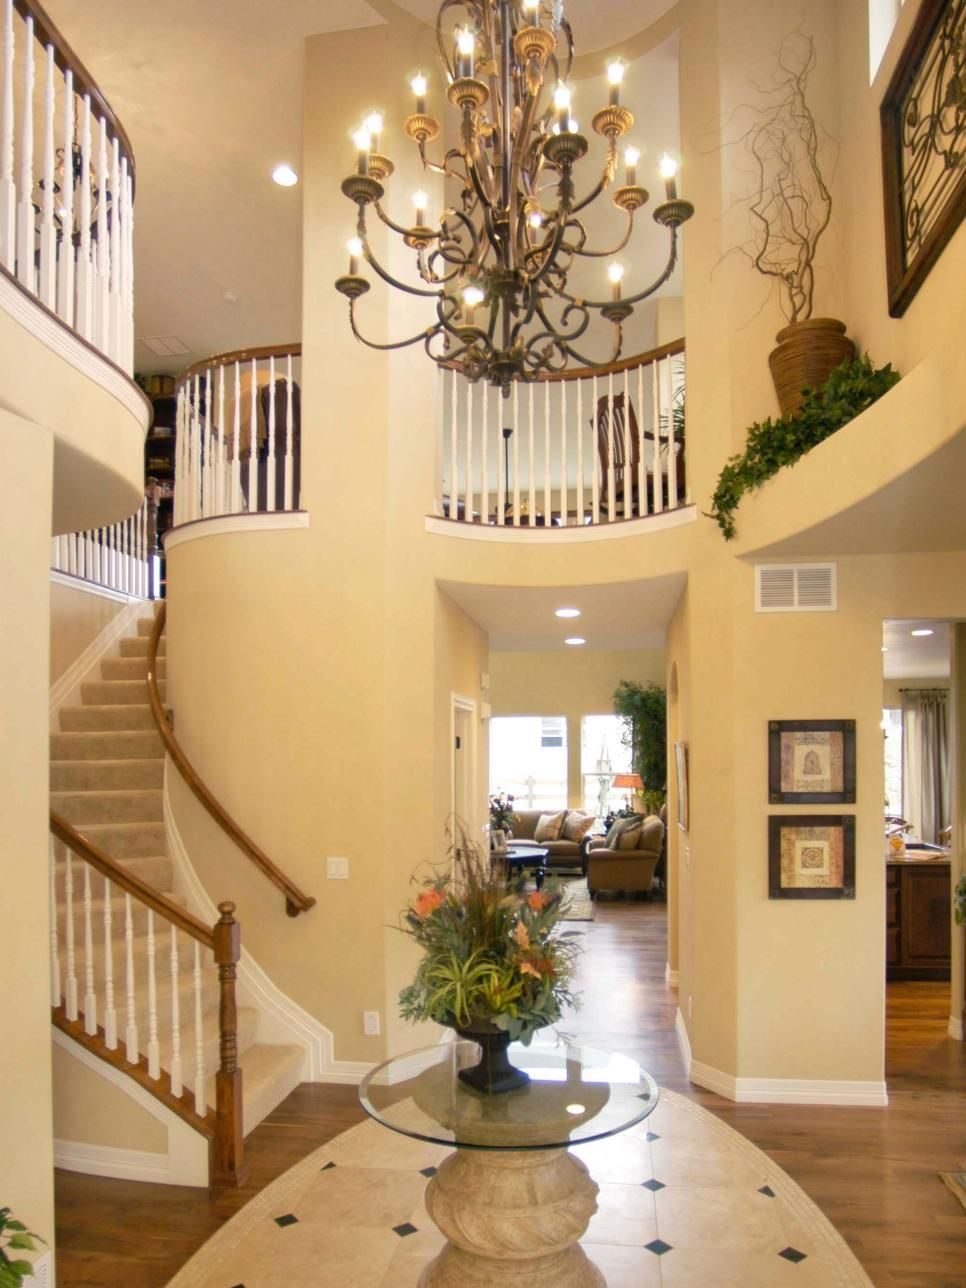 Discover The Latest Trends In Entryway Lighting With Pictures Of Styles And Designs At Hgtv